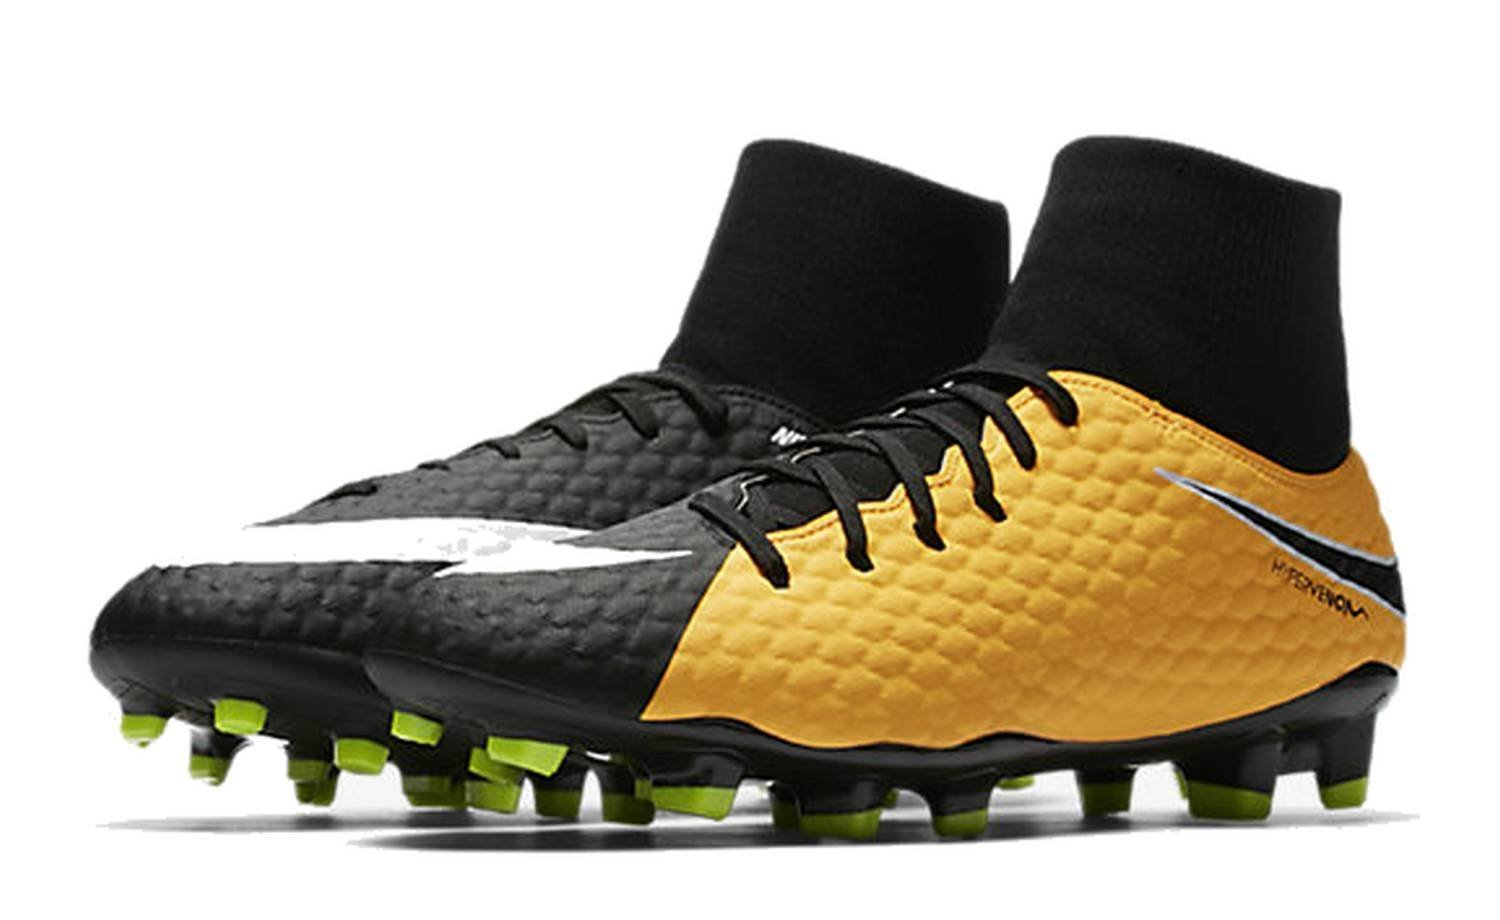 Nike Hypervenom Phelon 3 DF FG Mens Football Cleats B00AU01I7E 9 D(M) US|Laser Orange Black White 801